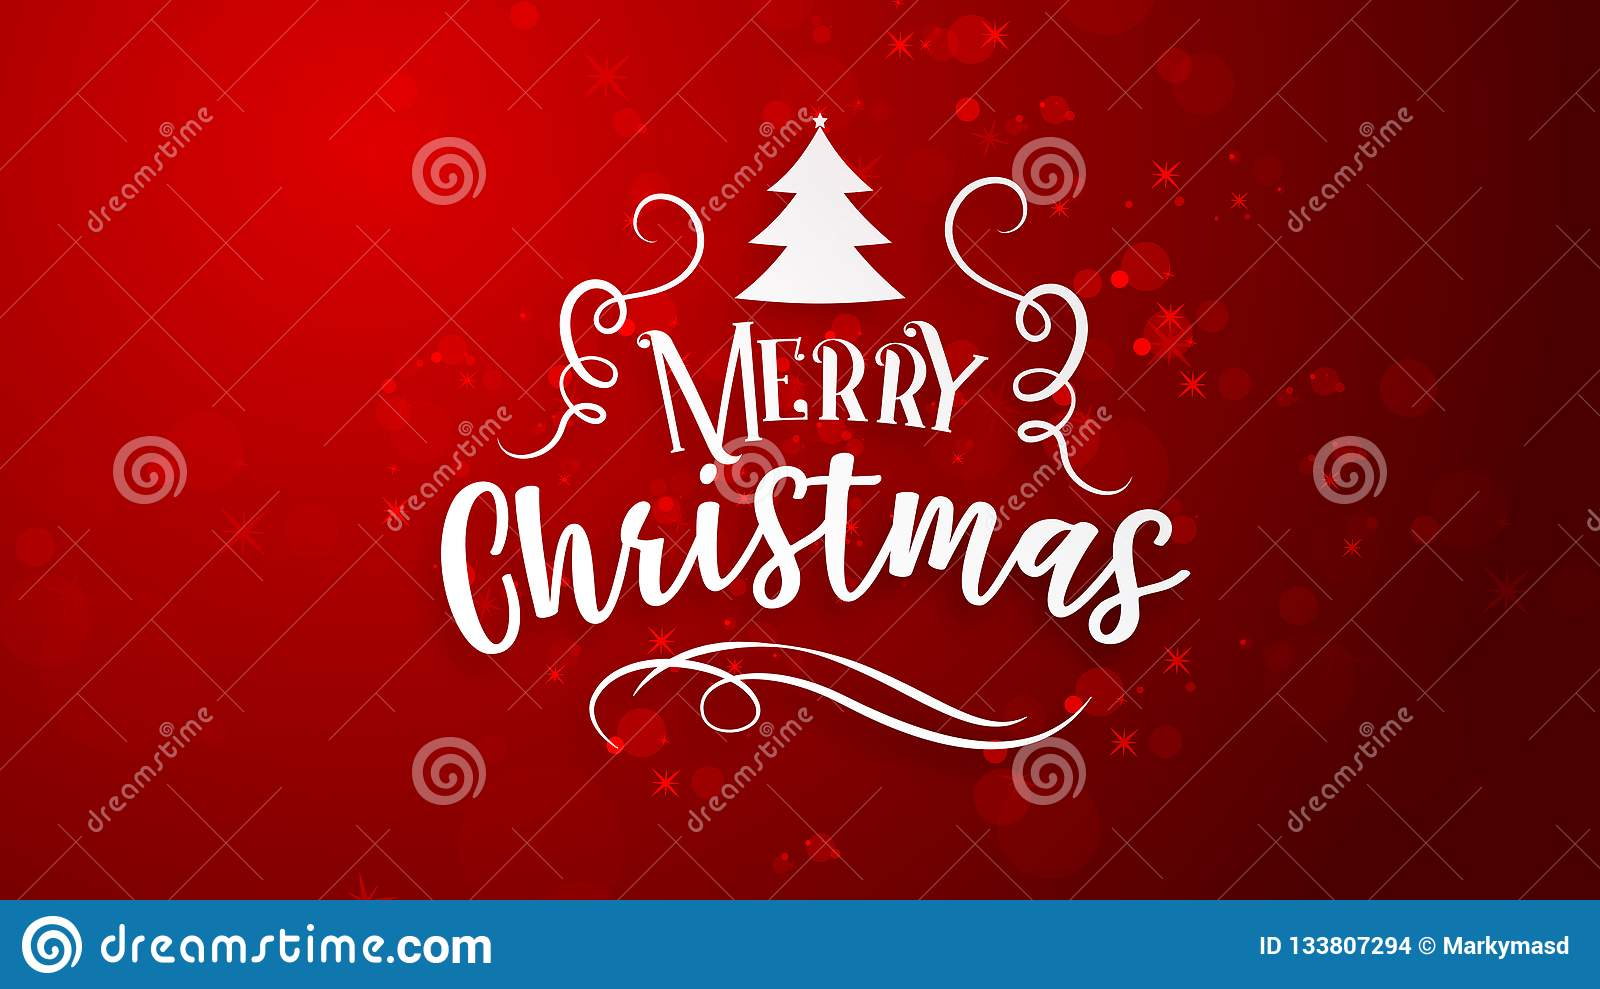 Red background with Merry Christmas greeting